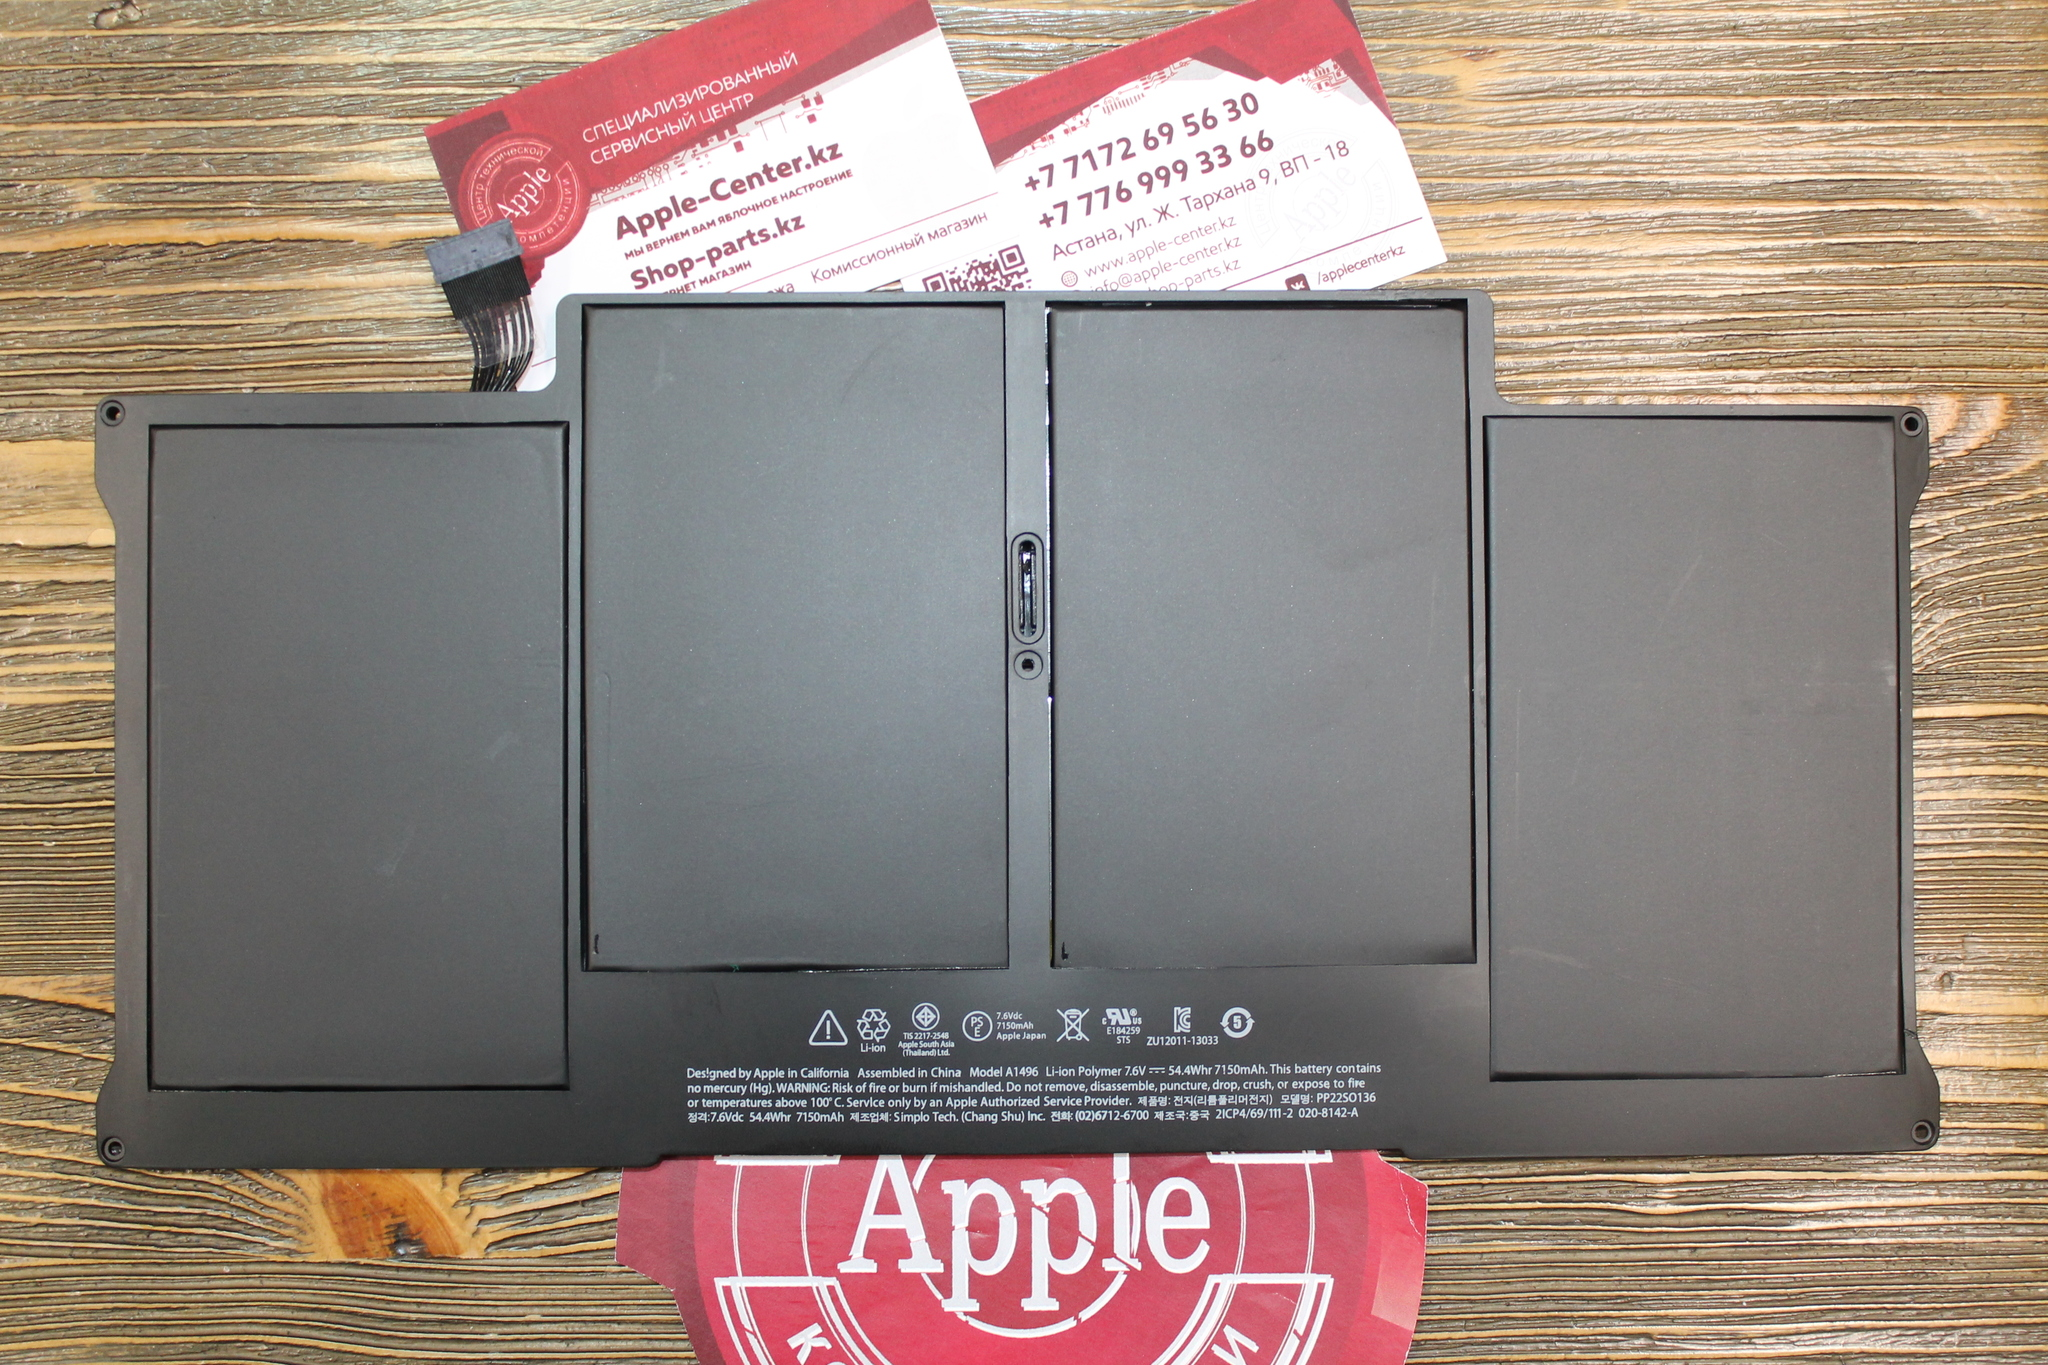 Аккумулятор MacBook Air 13 A1466 54.4Wh 7.6V A1496 Mid 2013 Early 2014 Early 2015 661-7474 661-6055